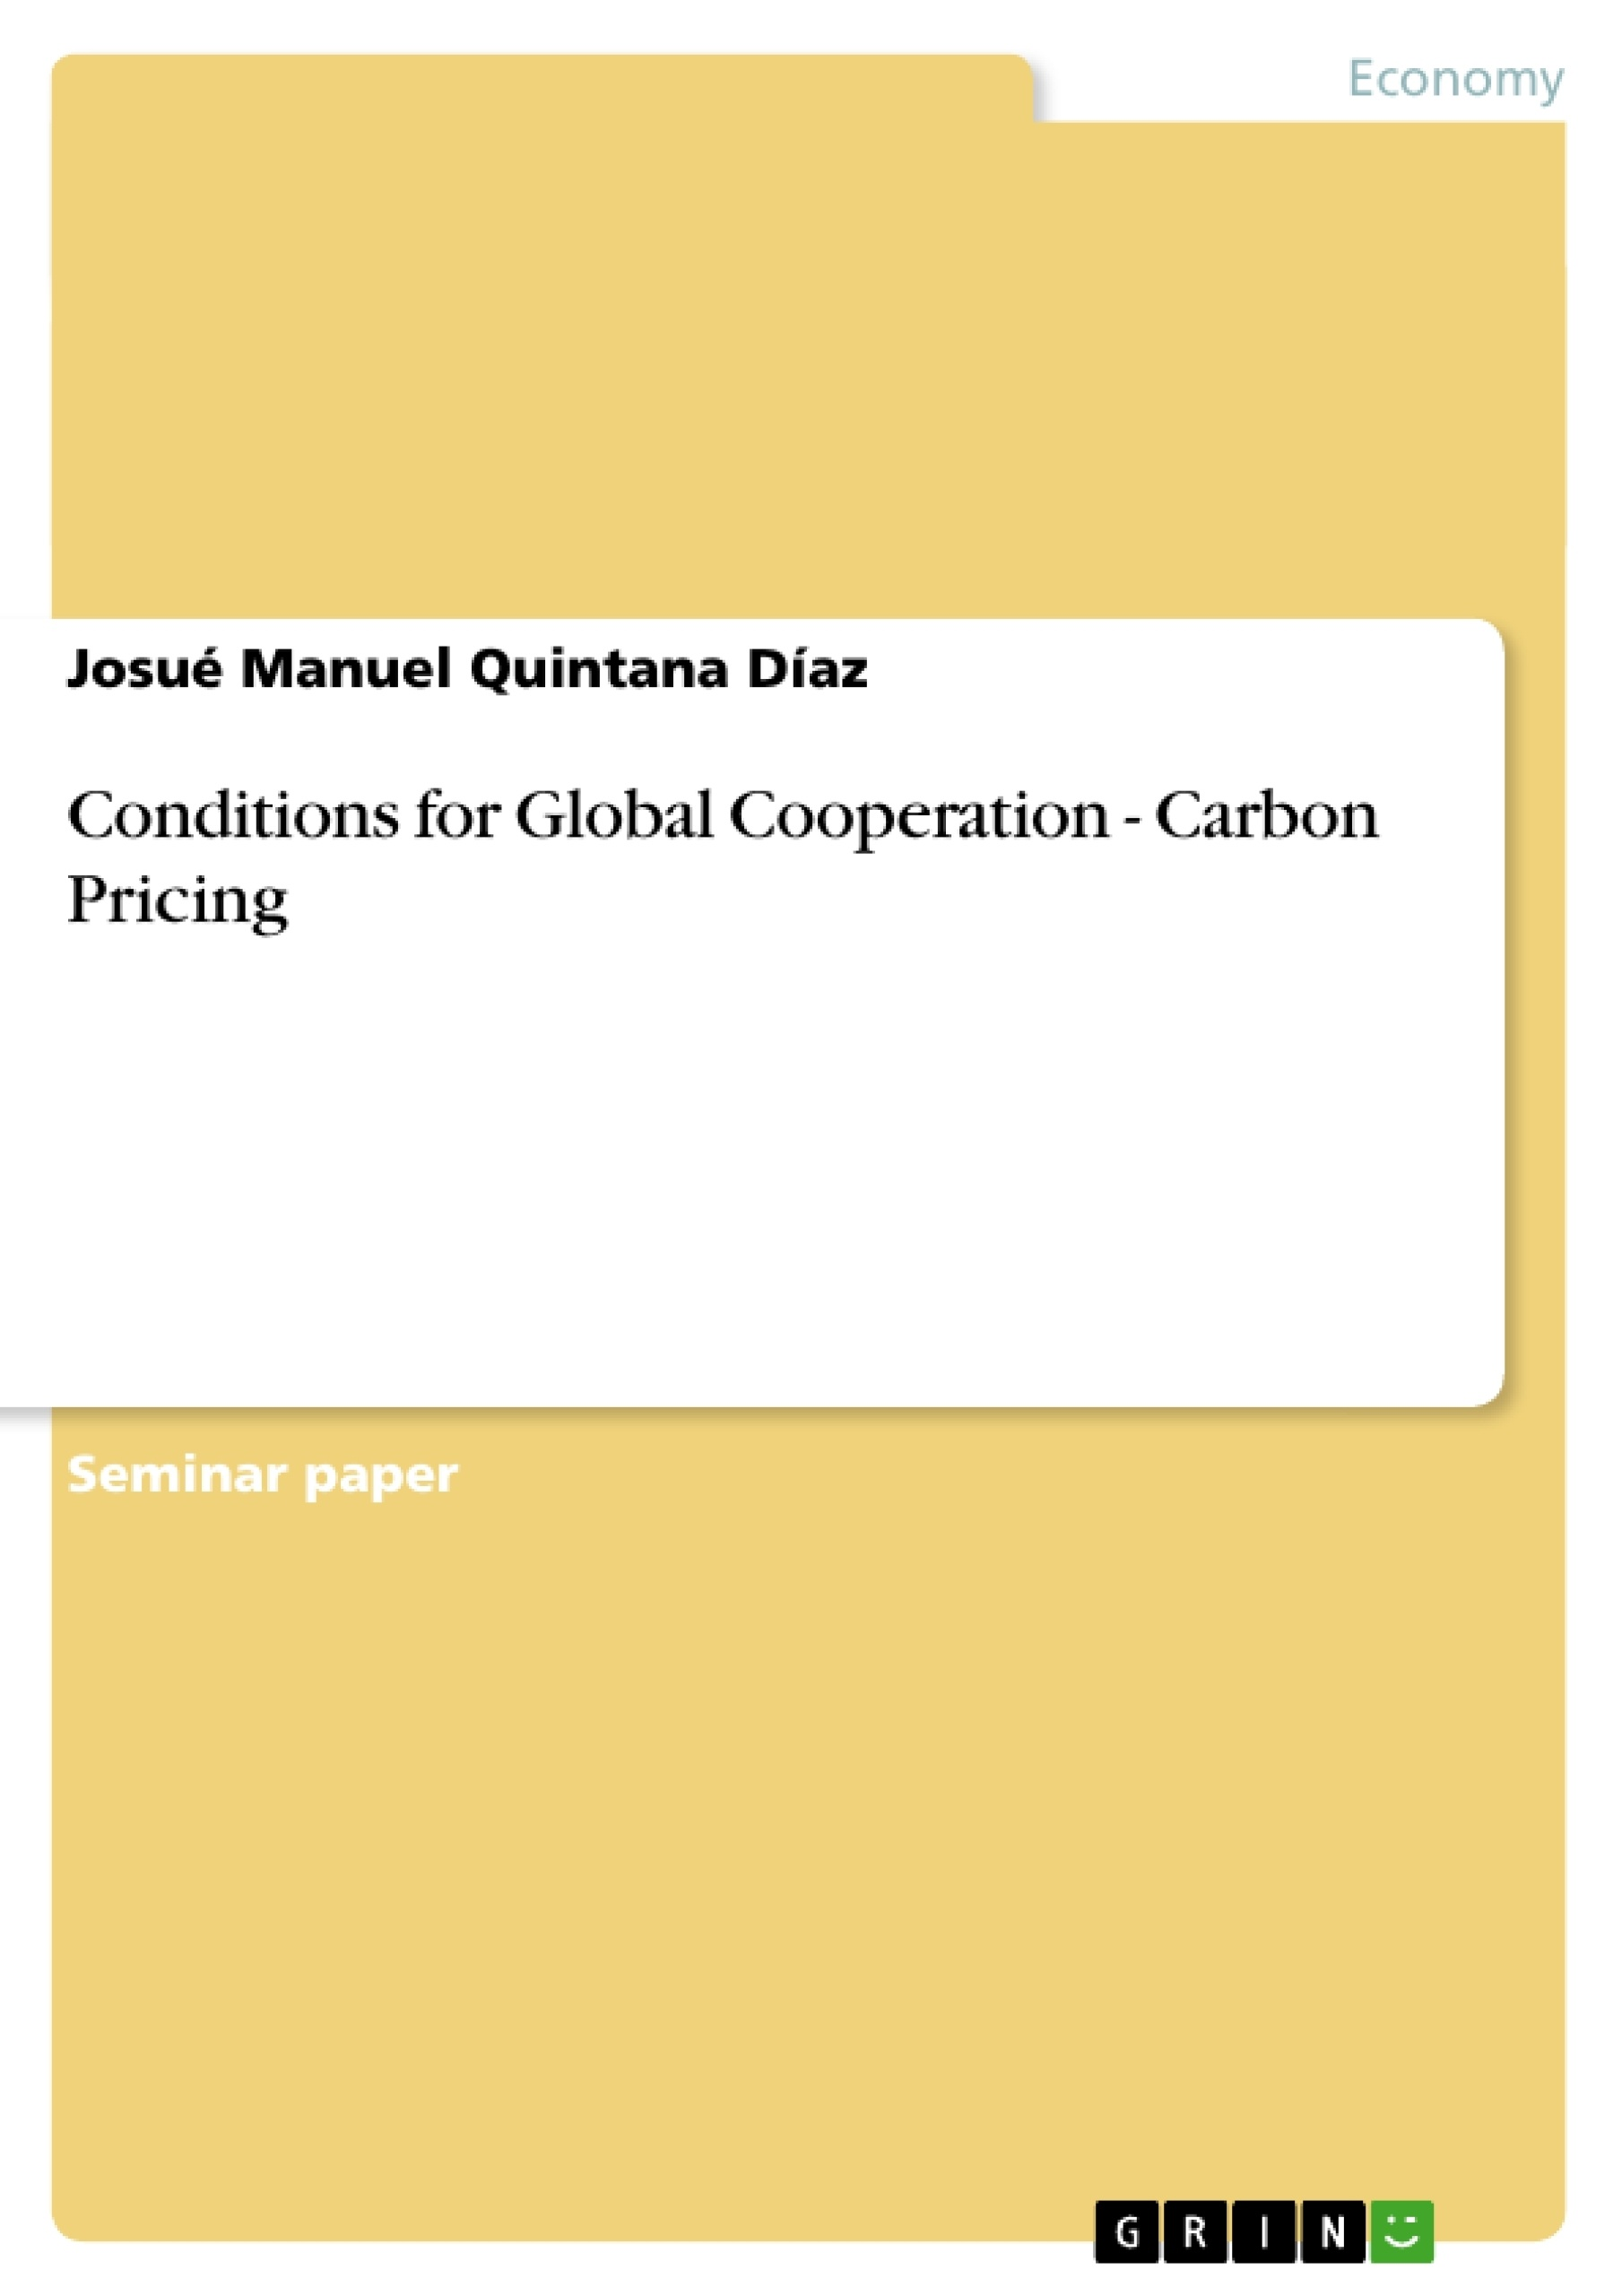 Title: Conditions for Global Cooperation - Carbon Pricing